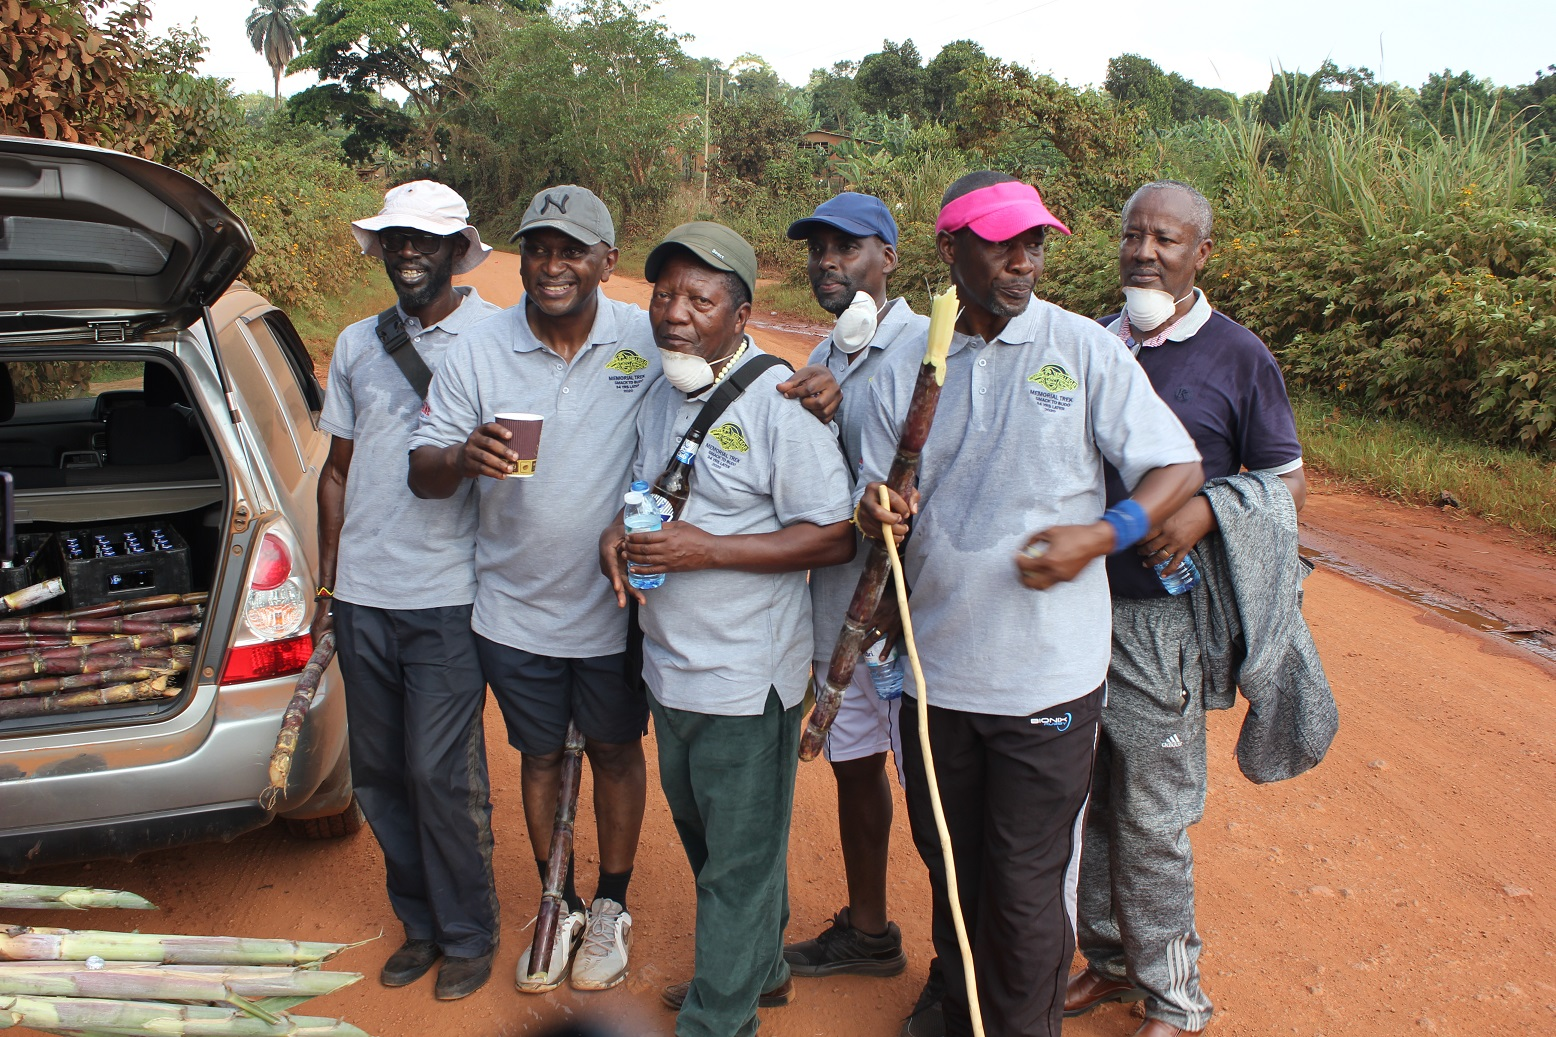 Some of the trekkers stop for a sugarcane break in Namugoga